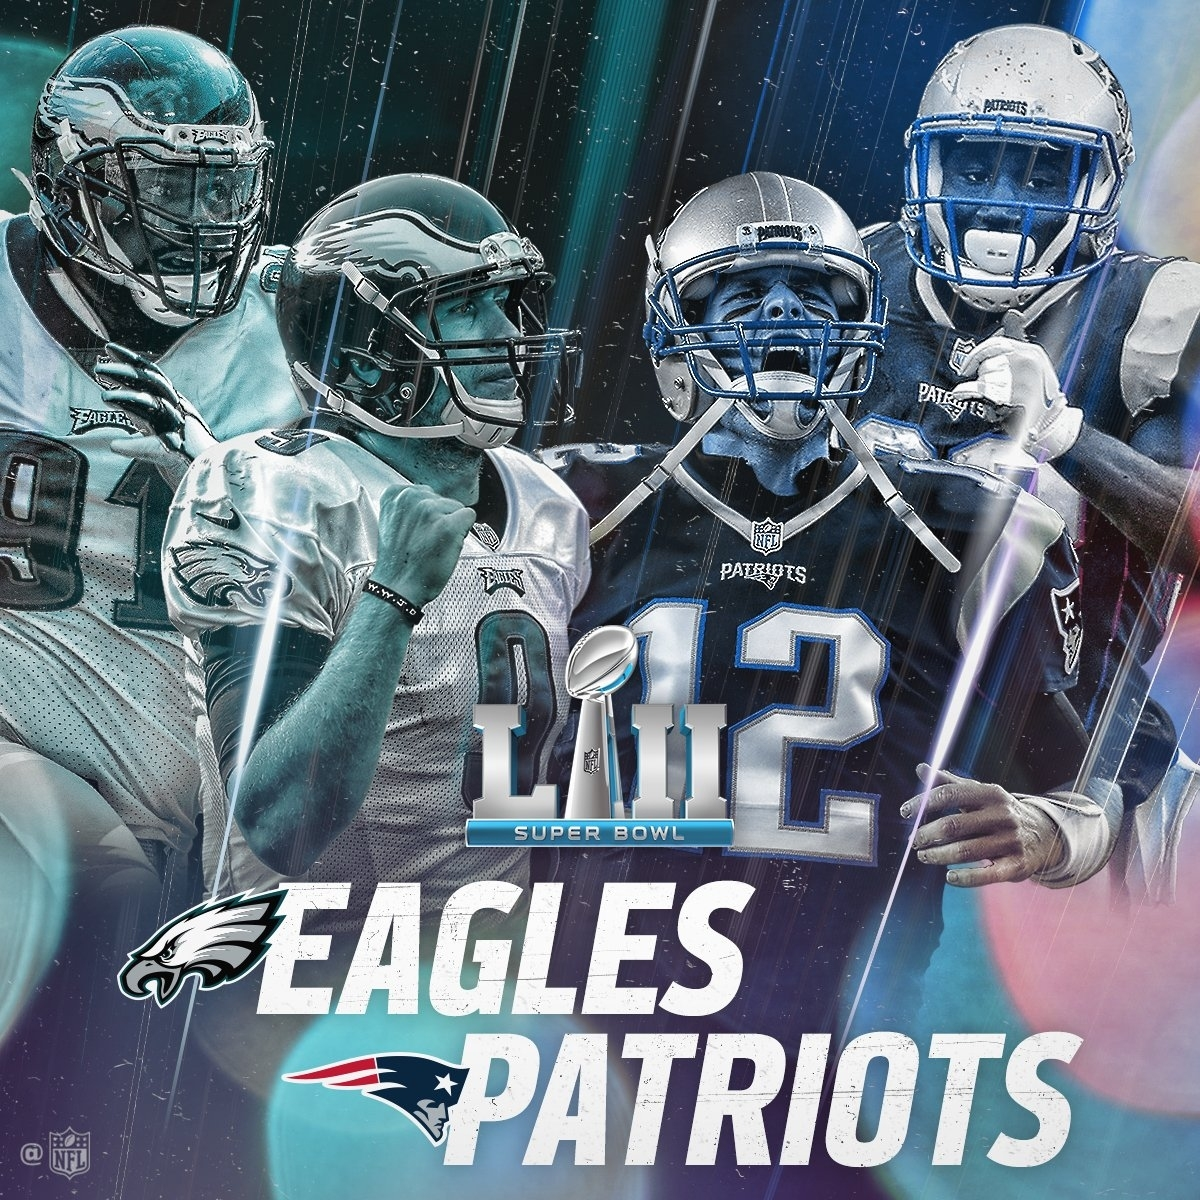 Patriots Vs. Eagles In Superbowl - Am1380 intended for Eagles Patriots Super Bowl